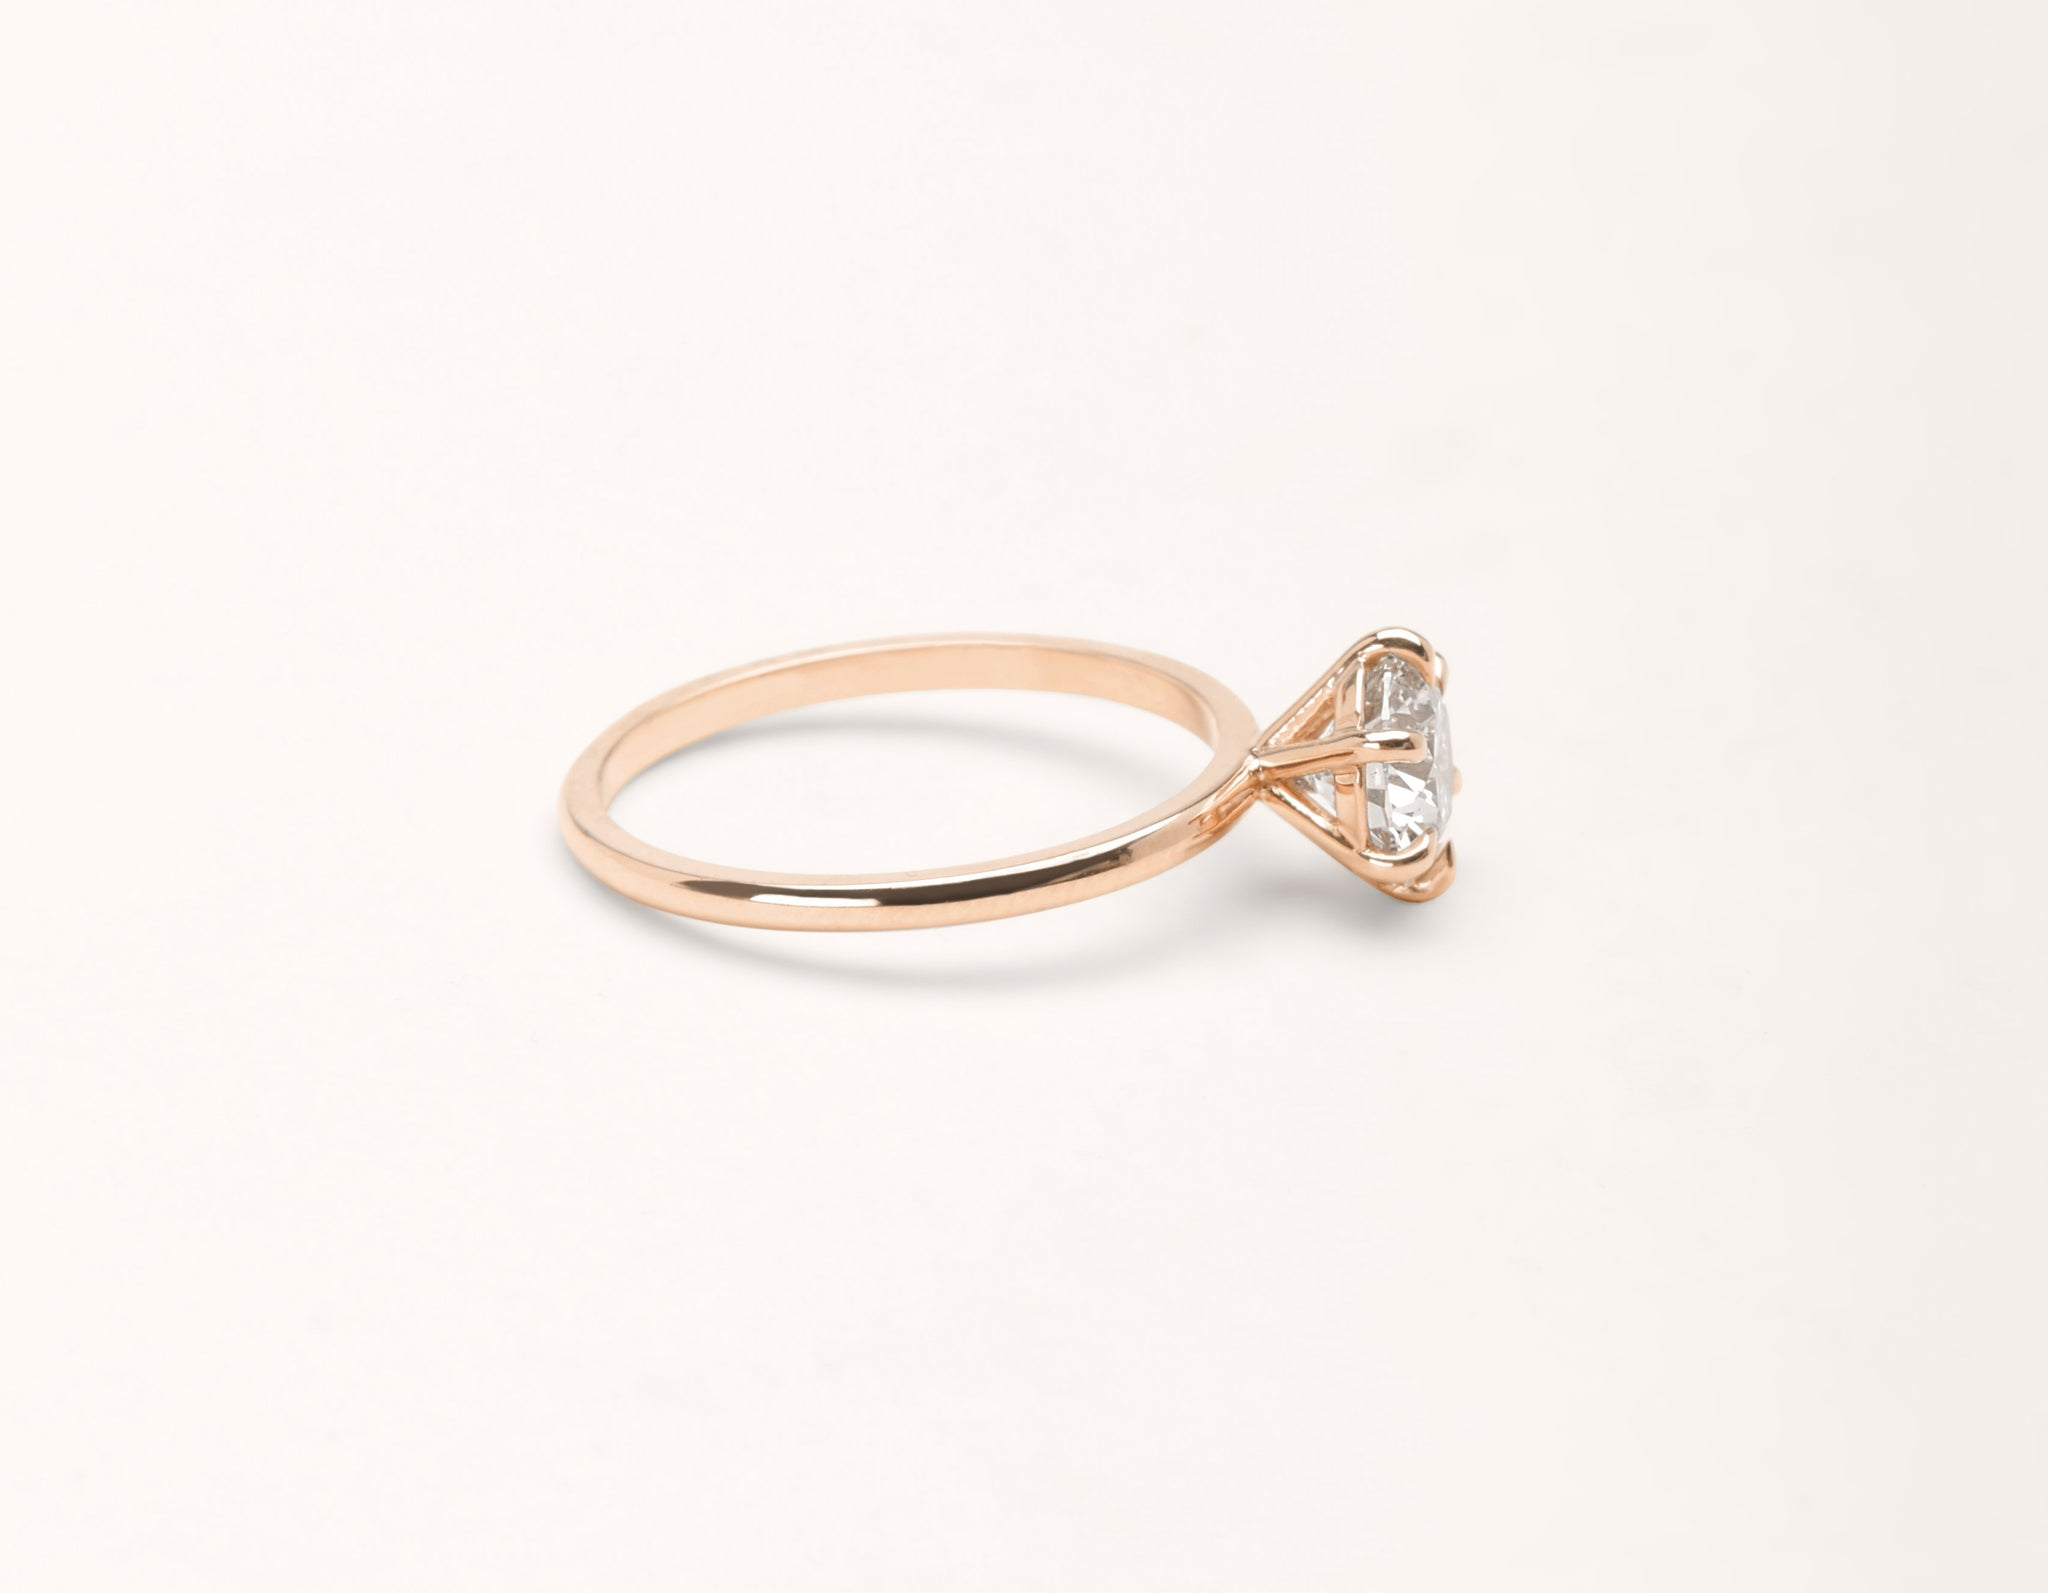 Simple modern 18k solid rose gold 1 carat round brilliant Solitaire diamond engagement ring Vrai & Oro